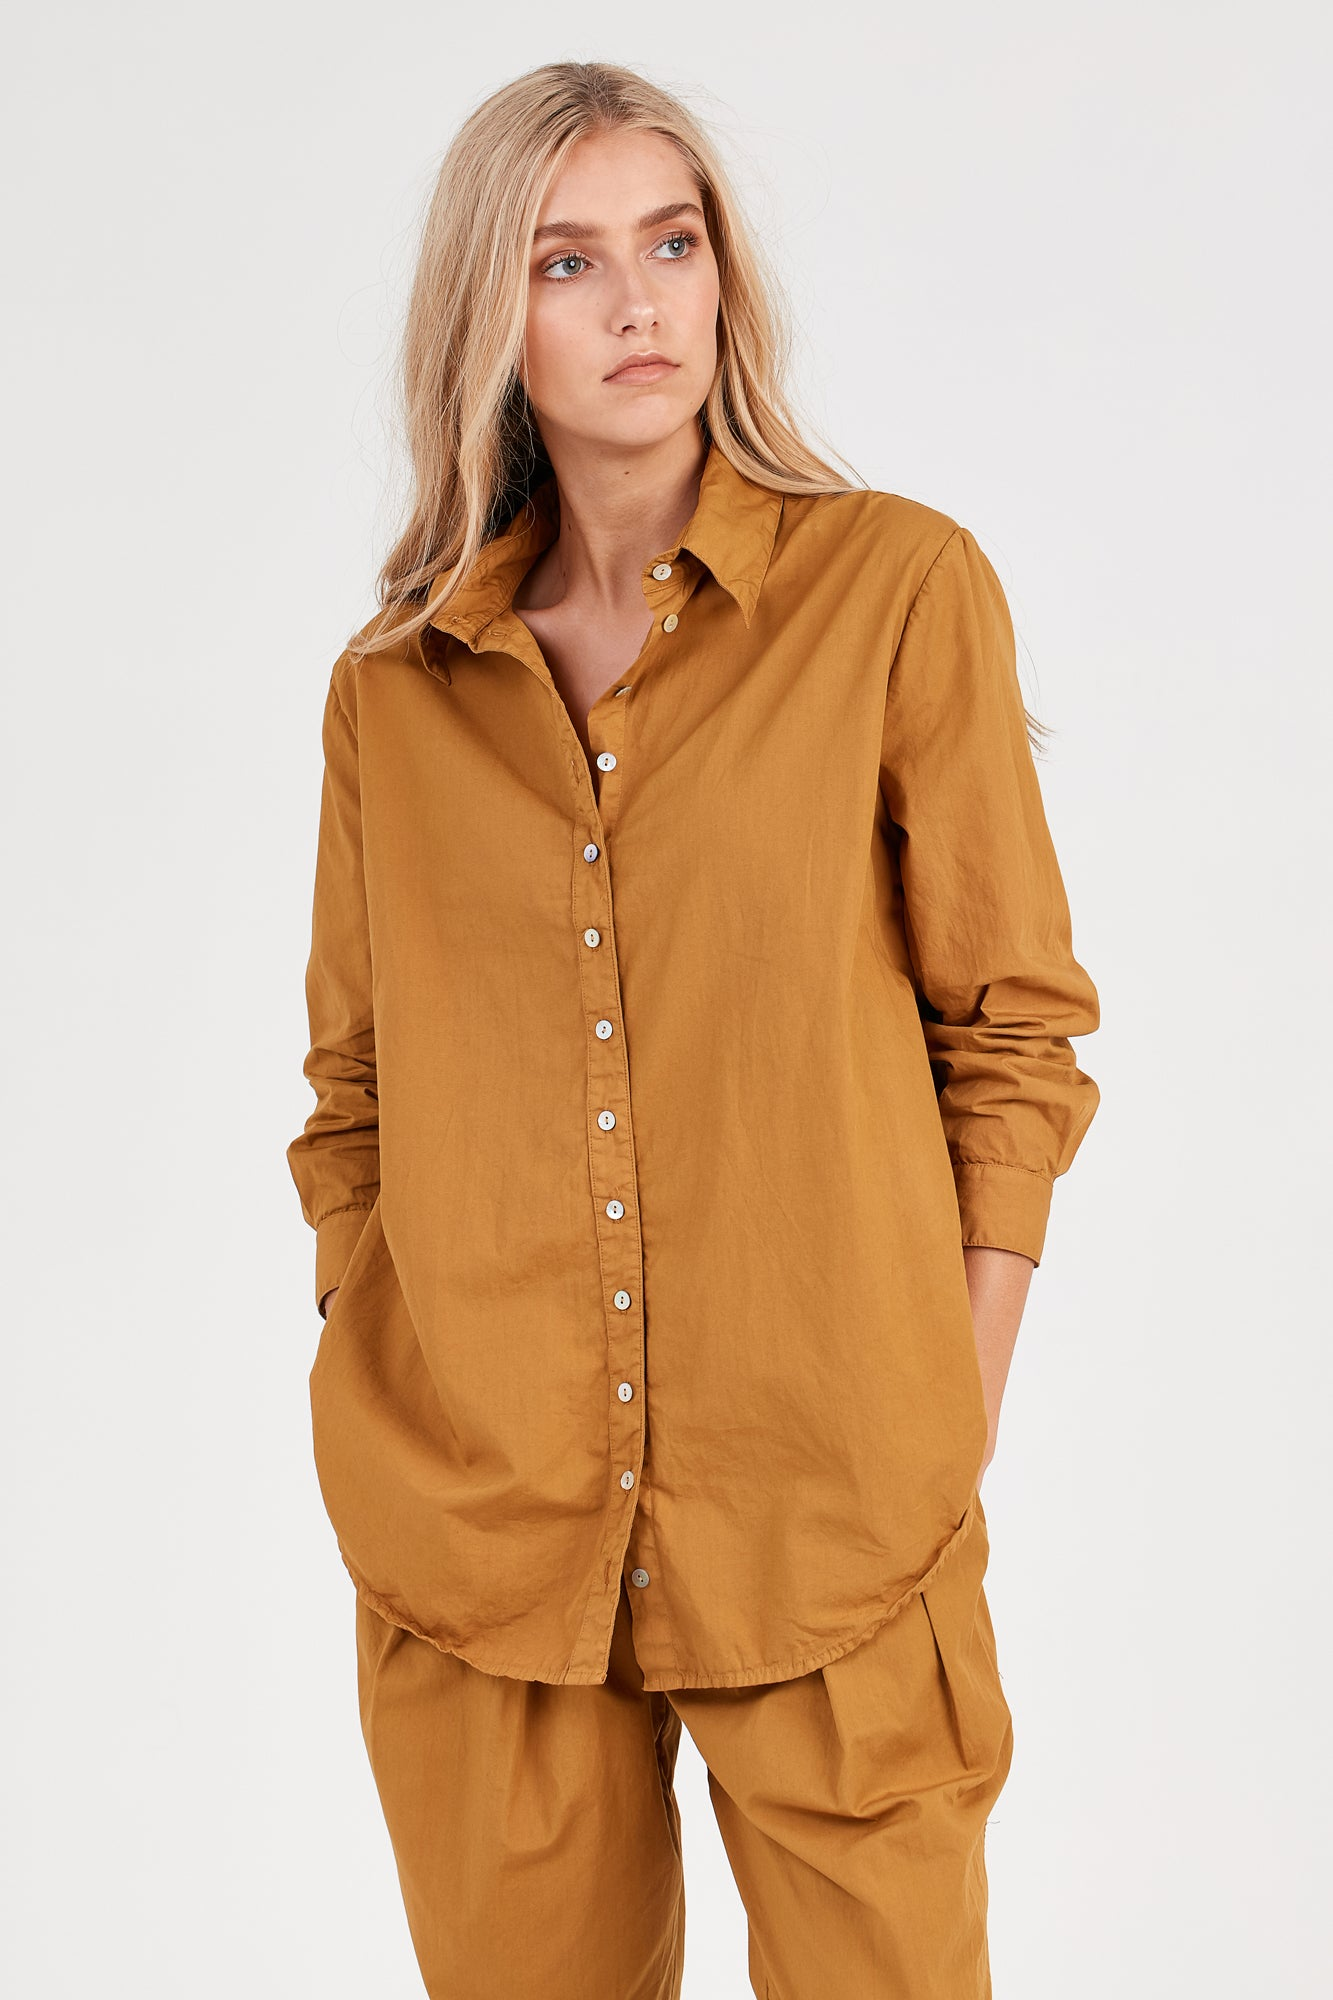 COCOON SHIRT - GOLDEN SUNSET